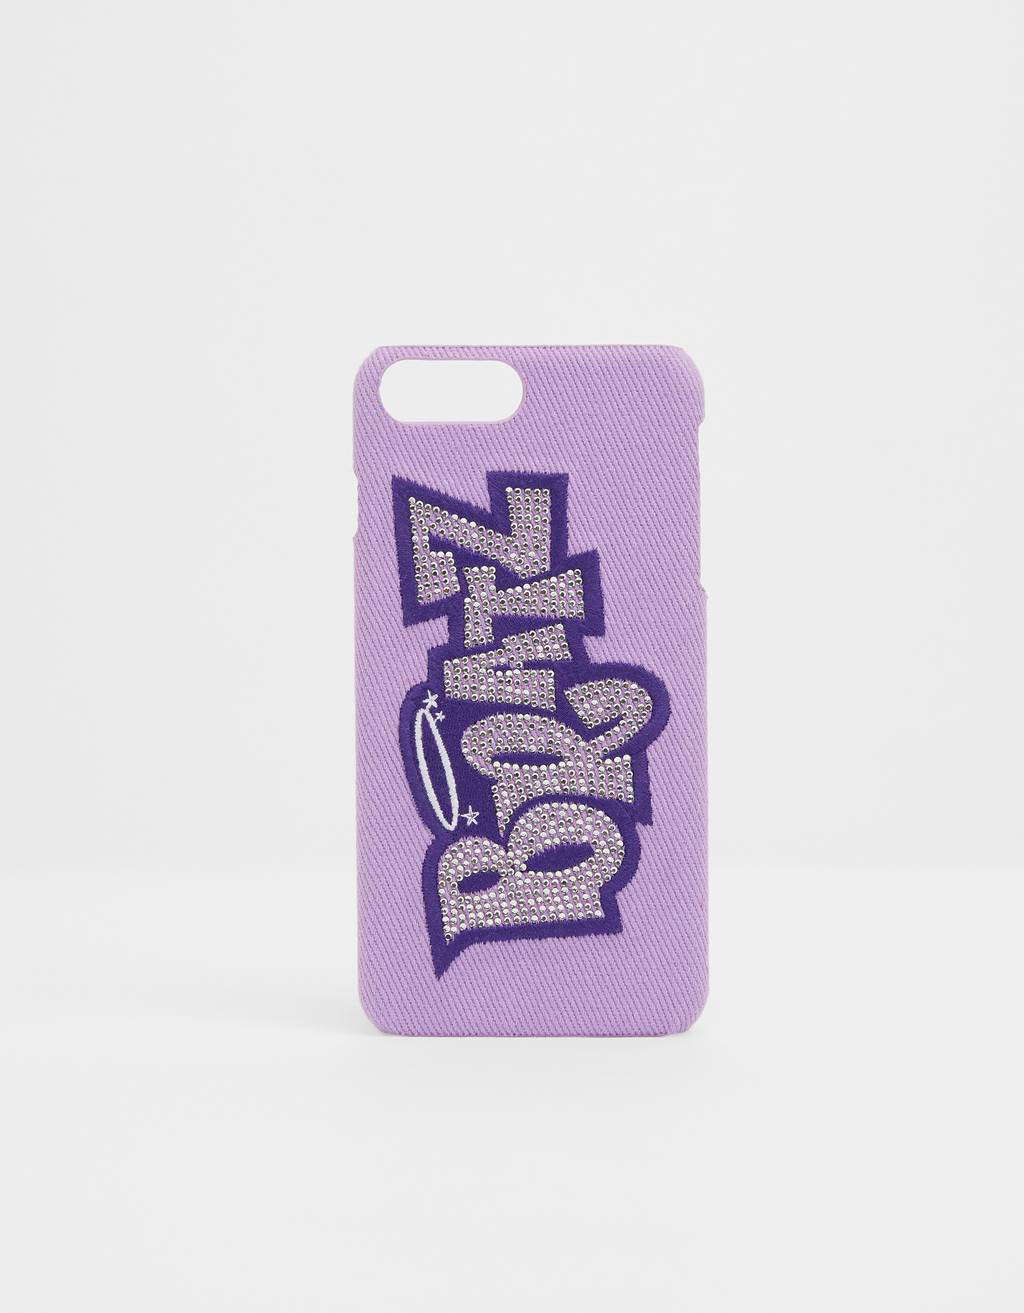 Bratz-cover til iPhone 6 Plus / 7 Plus / 8 Plus